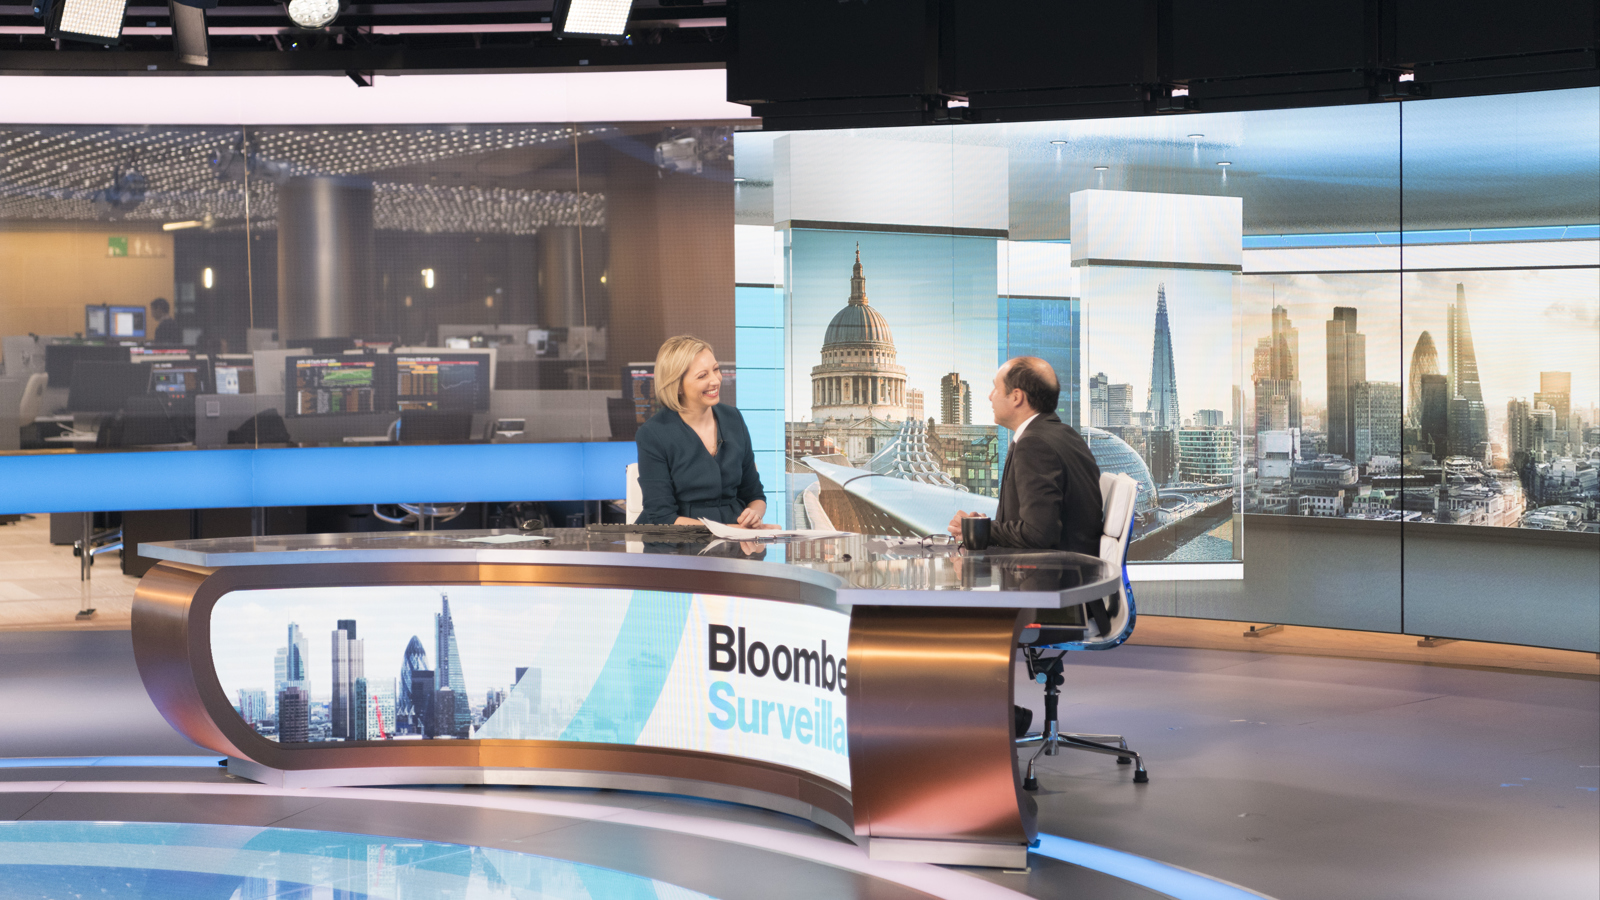 ncs_Bloomberg-London-TV-Studio-Newsroom-Jack-Morton_0004